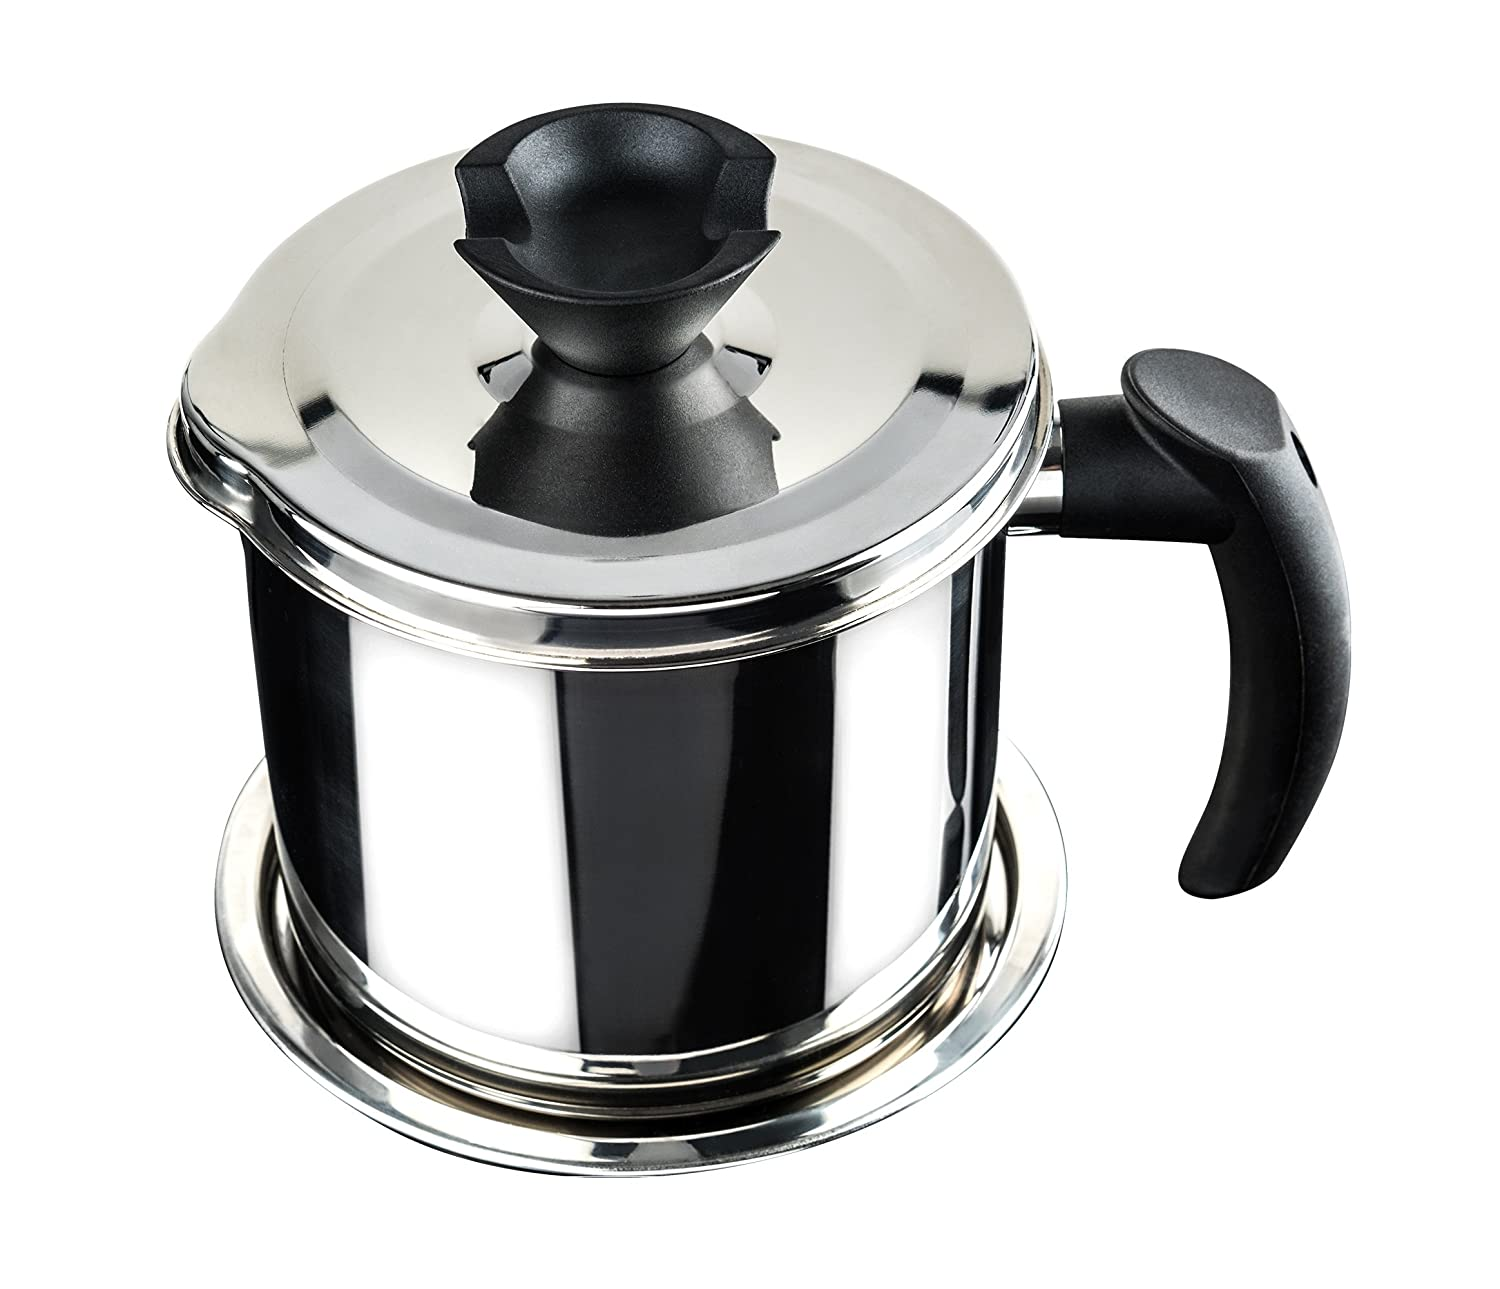 Nellam Grease Container with Separator, Includes Bonus Sponge and Towel - Durable Bacon Cooking Oil Strainer and Cooking Grease Can for Reusing Oil Stainless Steel by Nellam NK-01